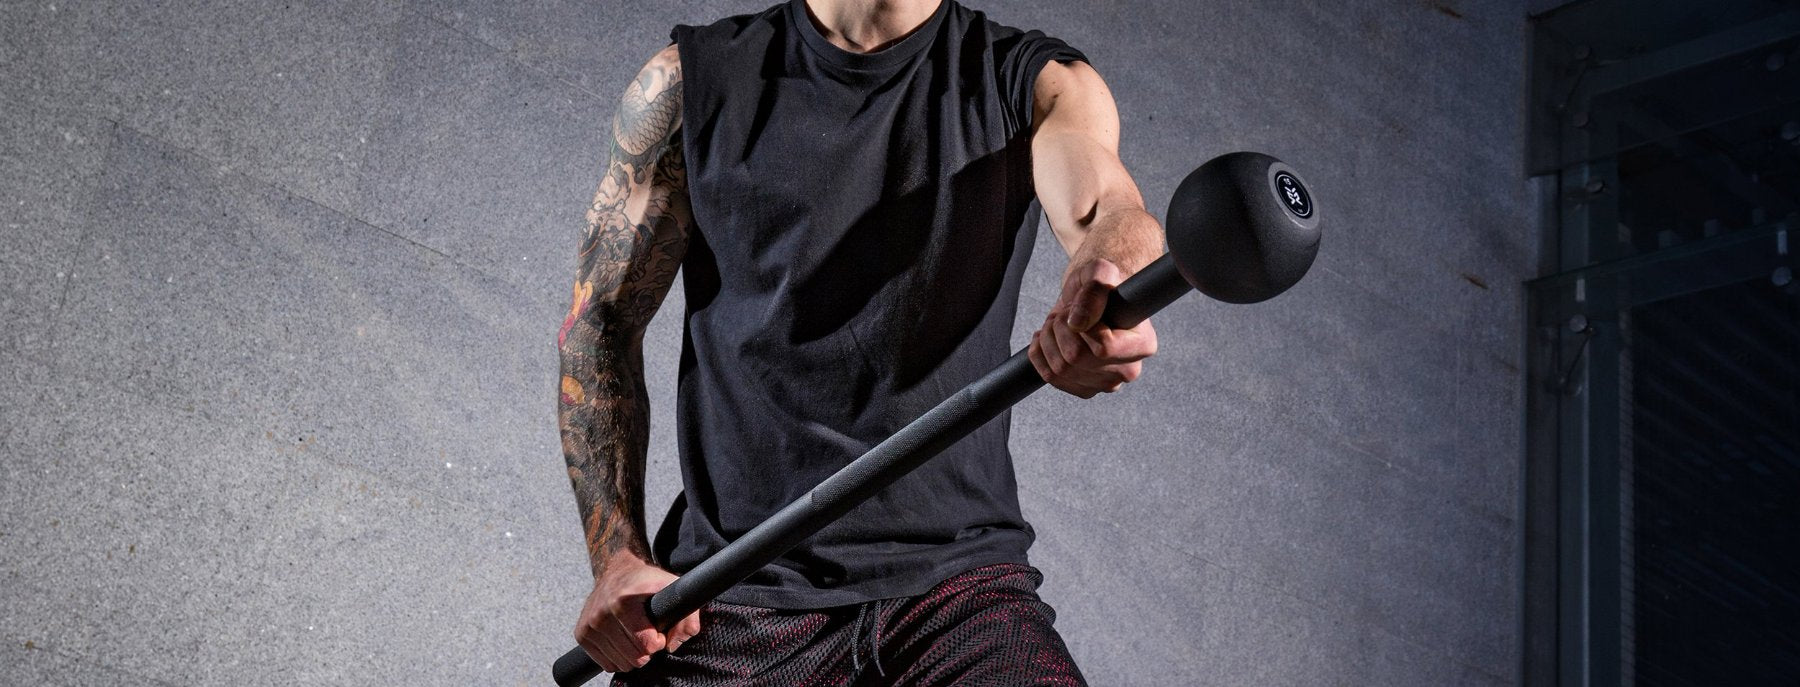 unconventional training equipment, the steel mace